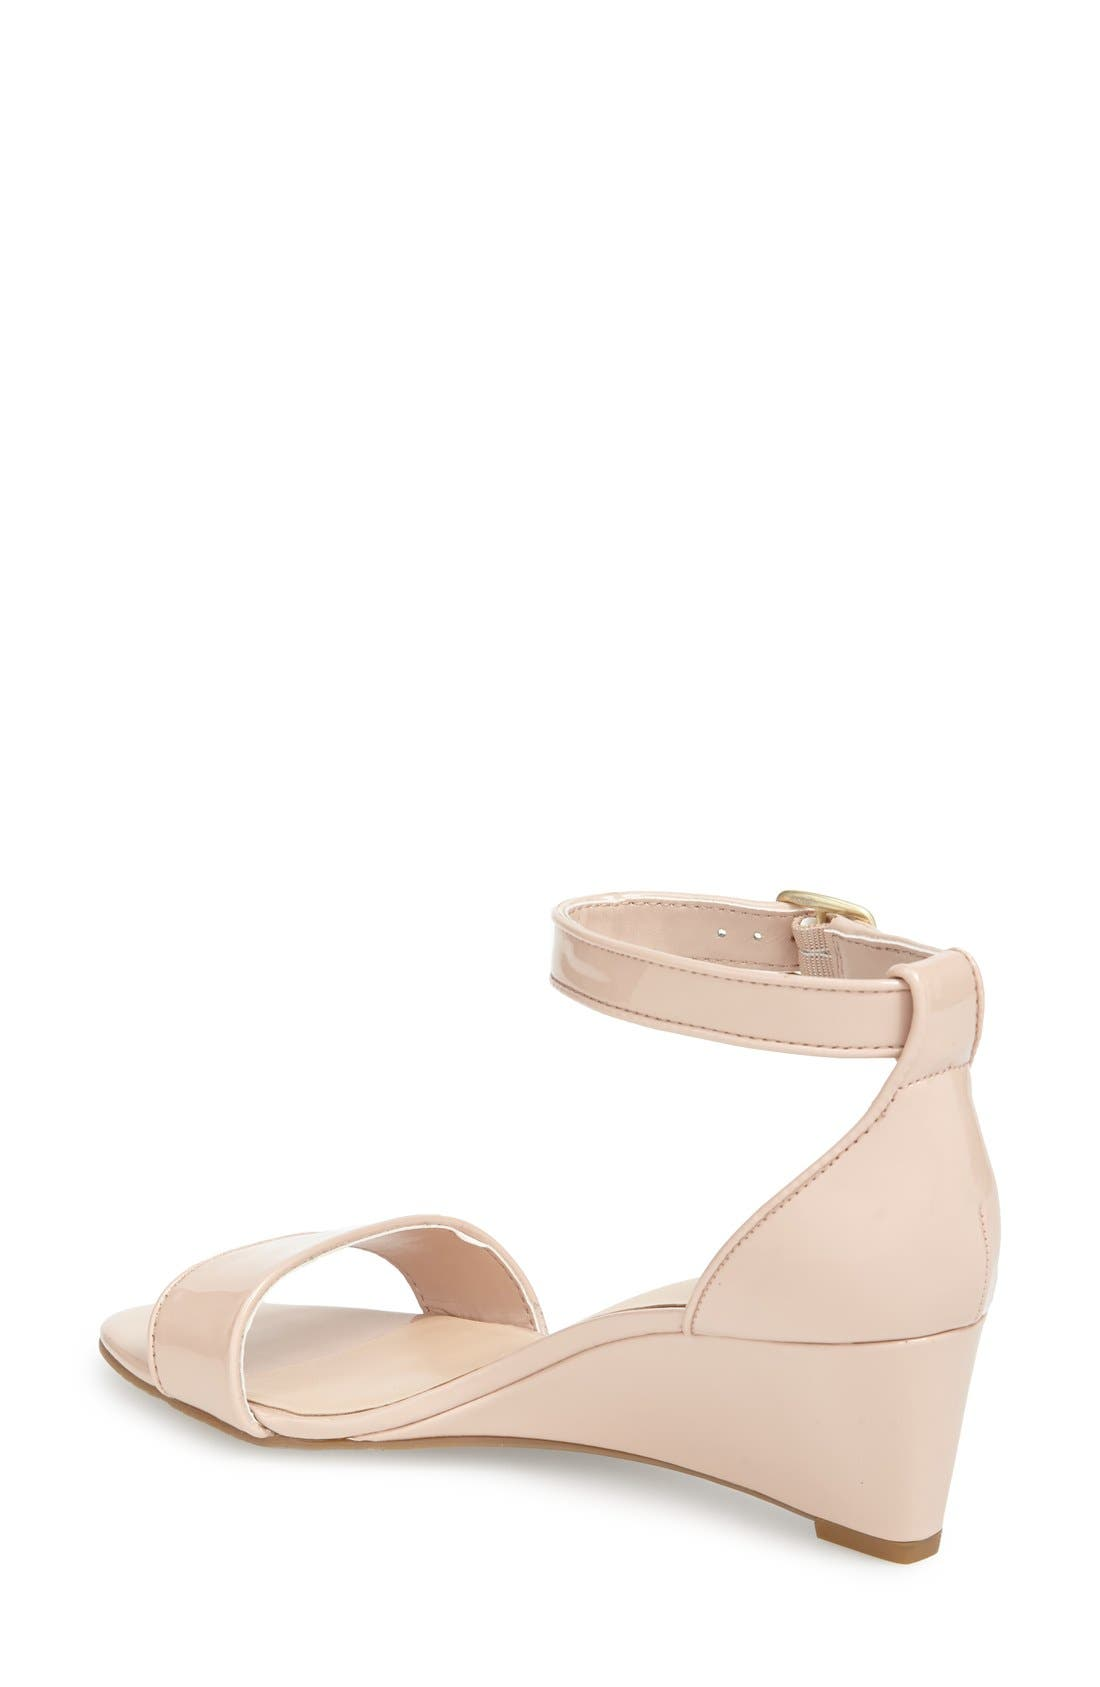 Alternate Image 2  - BP. 'Roxie' Wedge Sandal (Women)